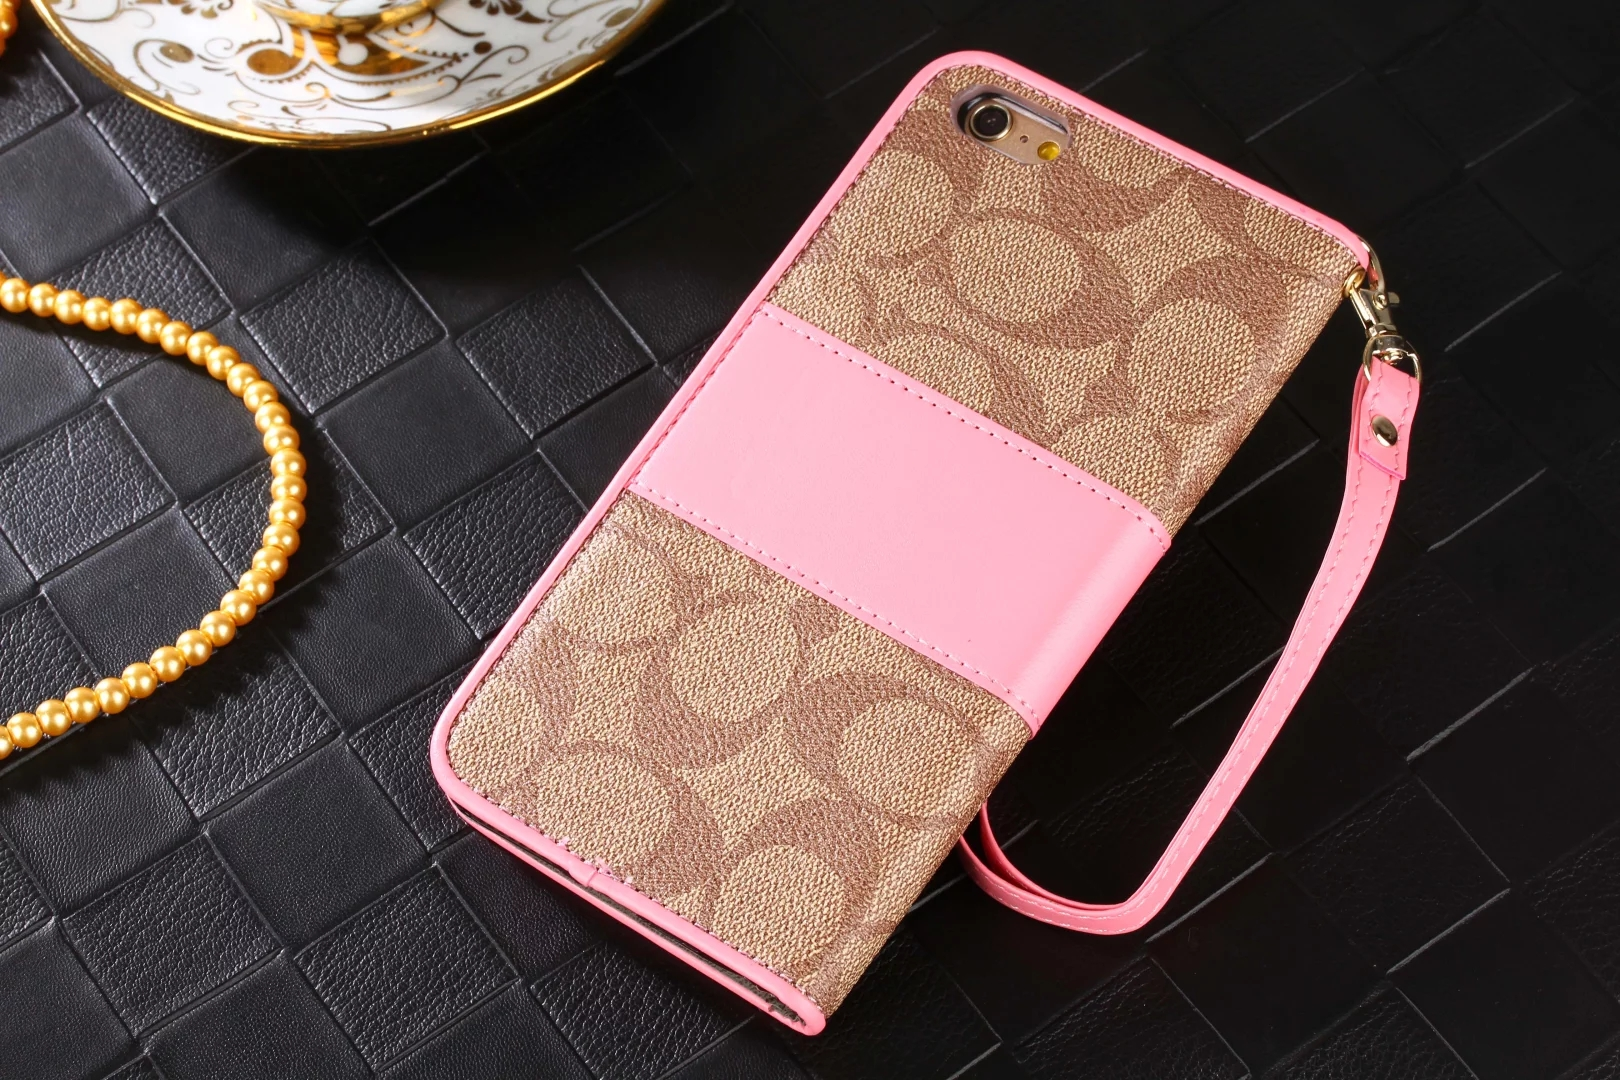 iphone 6 cases for girls best case for the iphone 6 fashion iphone6 case iphone 6 cases with designs apple liquidmetal pixel iphone case apple 6 features designer cell phone covers iphone 6 resolution